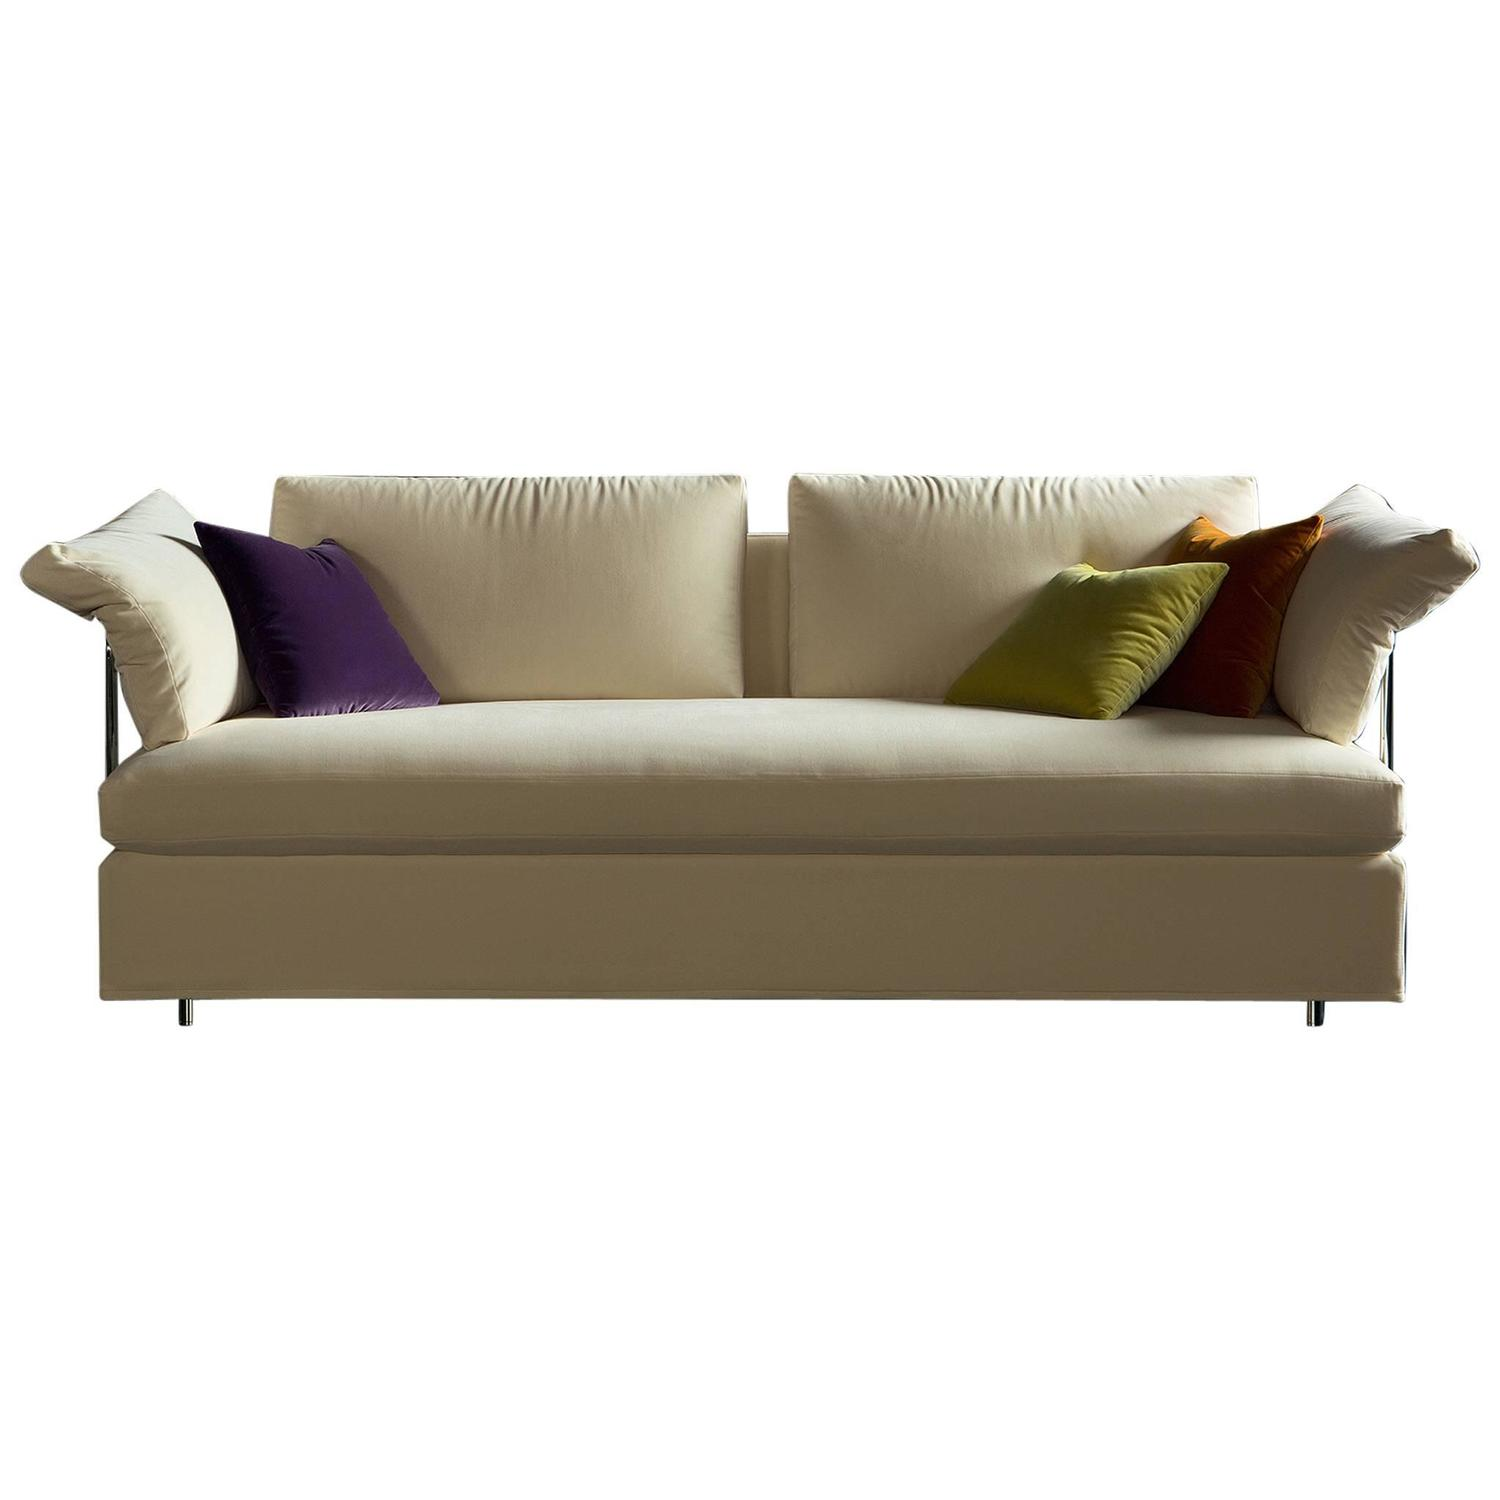 Sofa Bed 150cm Wide Italian Modern Sofa Bed Sb46 With Arms Fabric New Made In Italy Thesofa